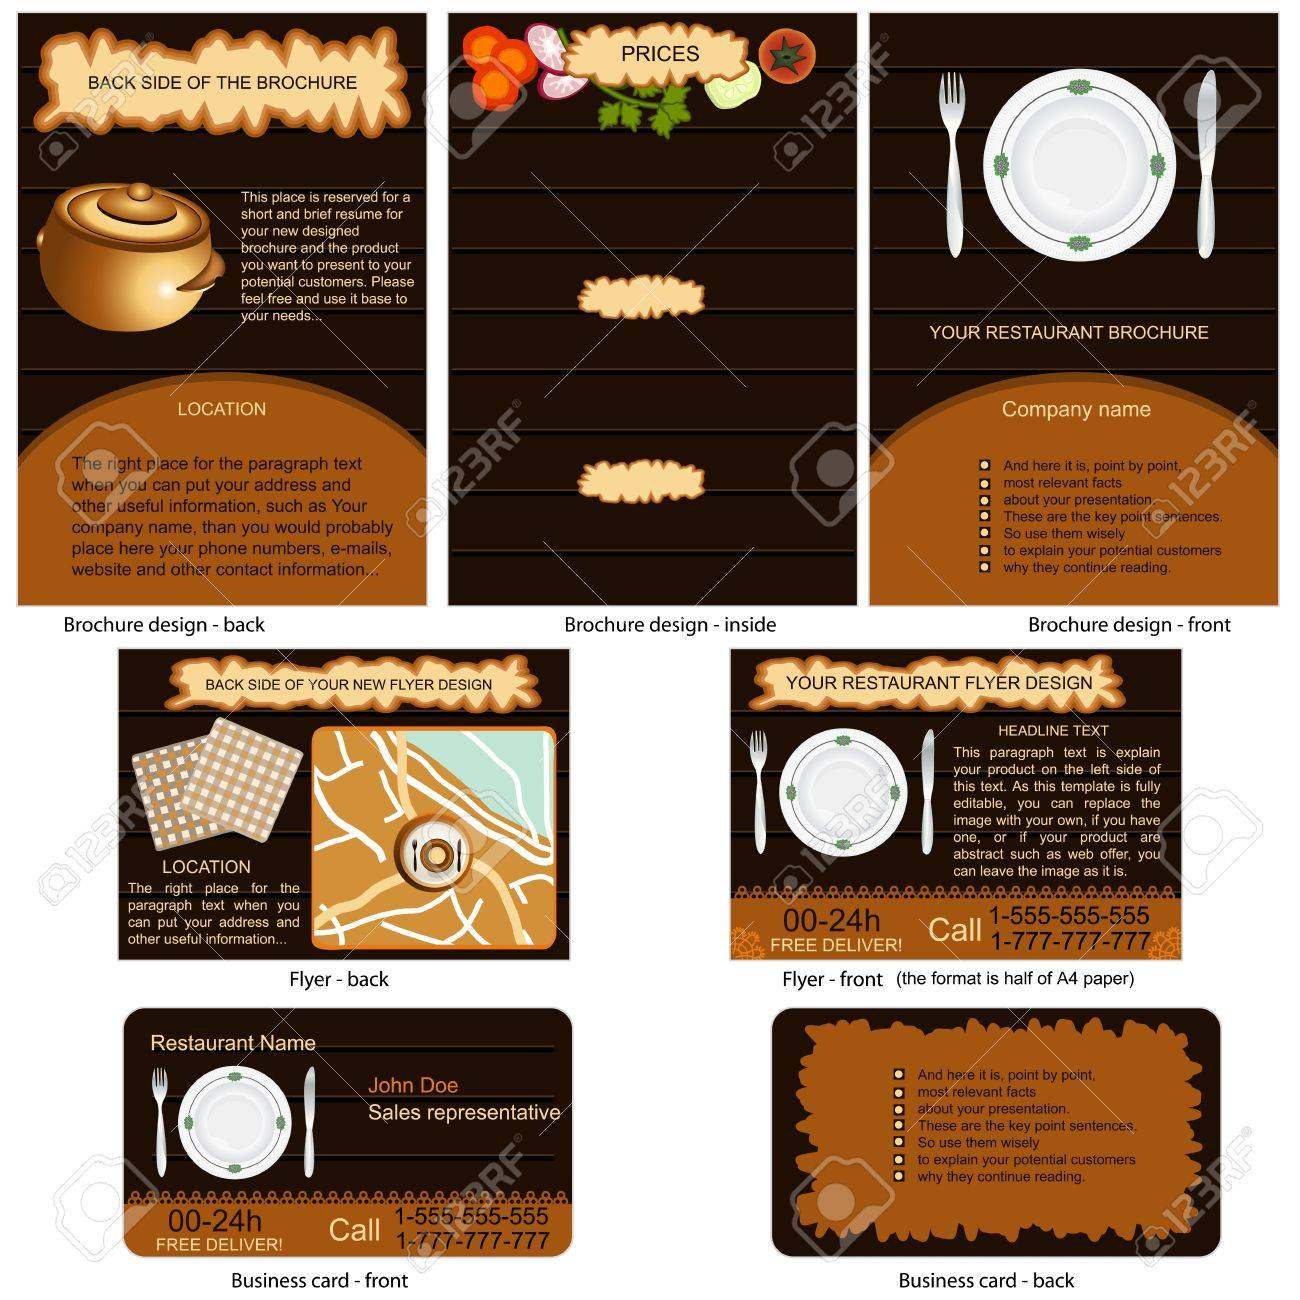 Restaurant stationary - brochure design, flyer design and business card design in one package and fully editable Stock Vector - 12909189